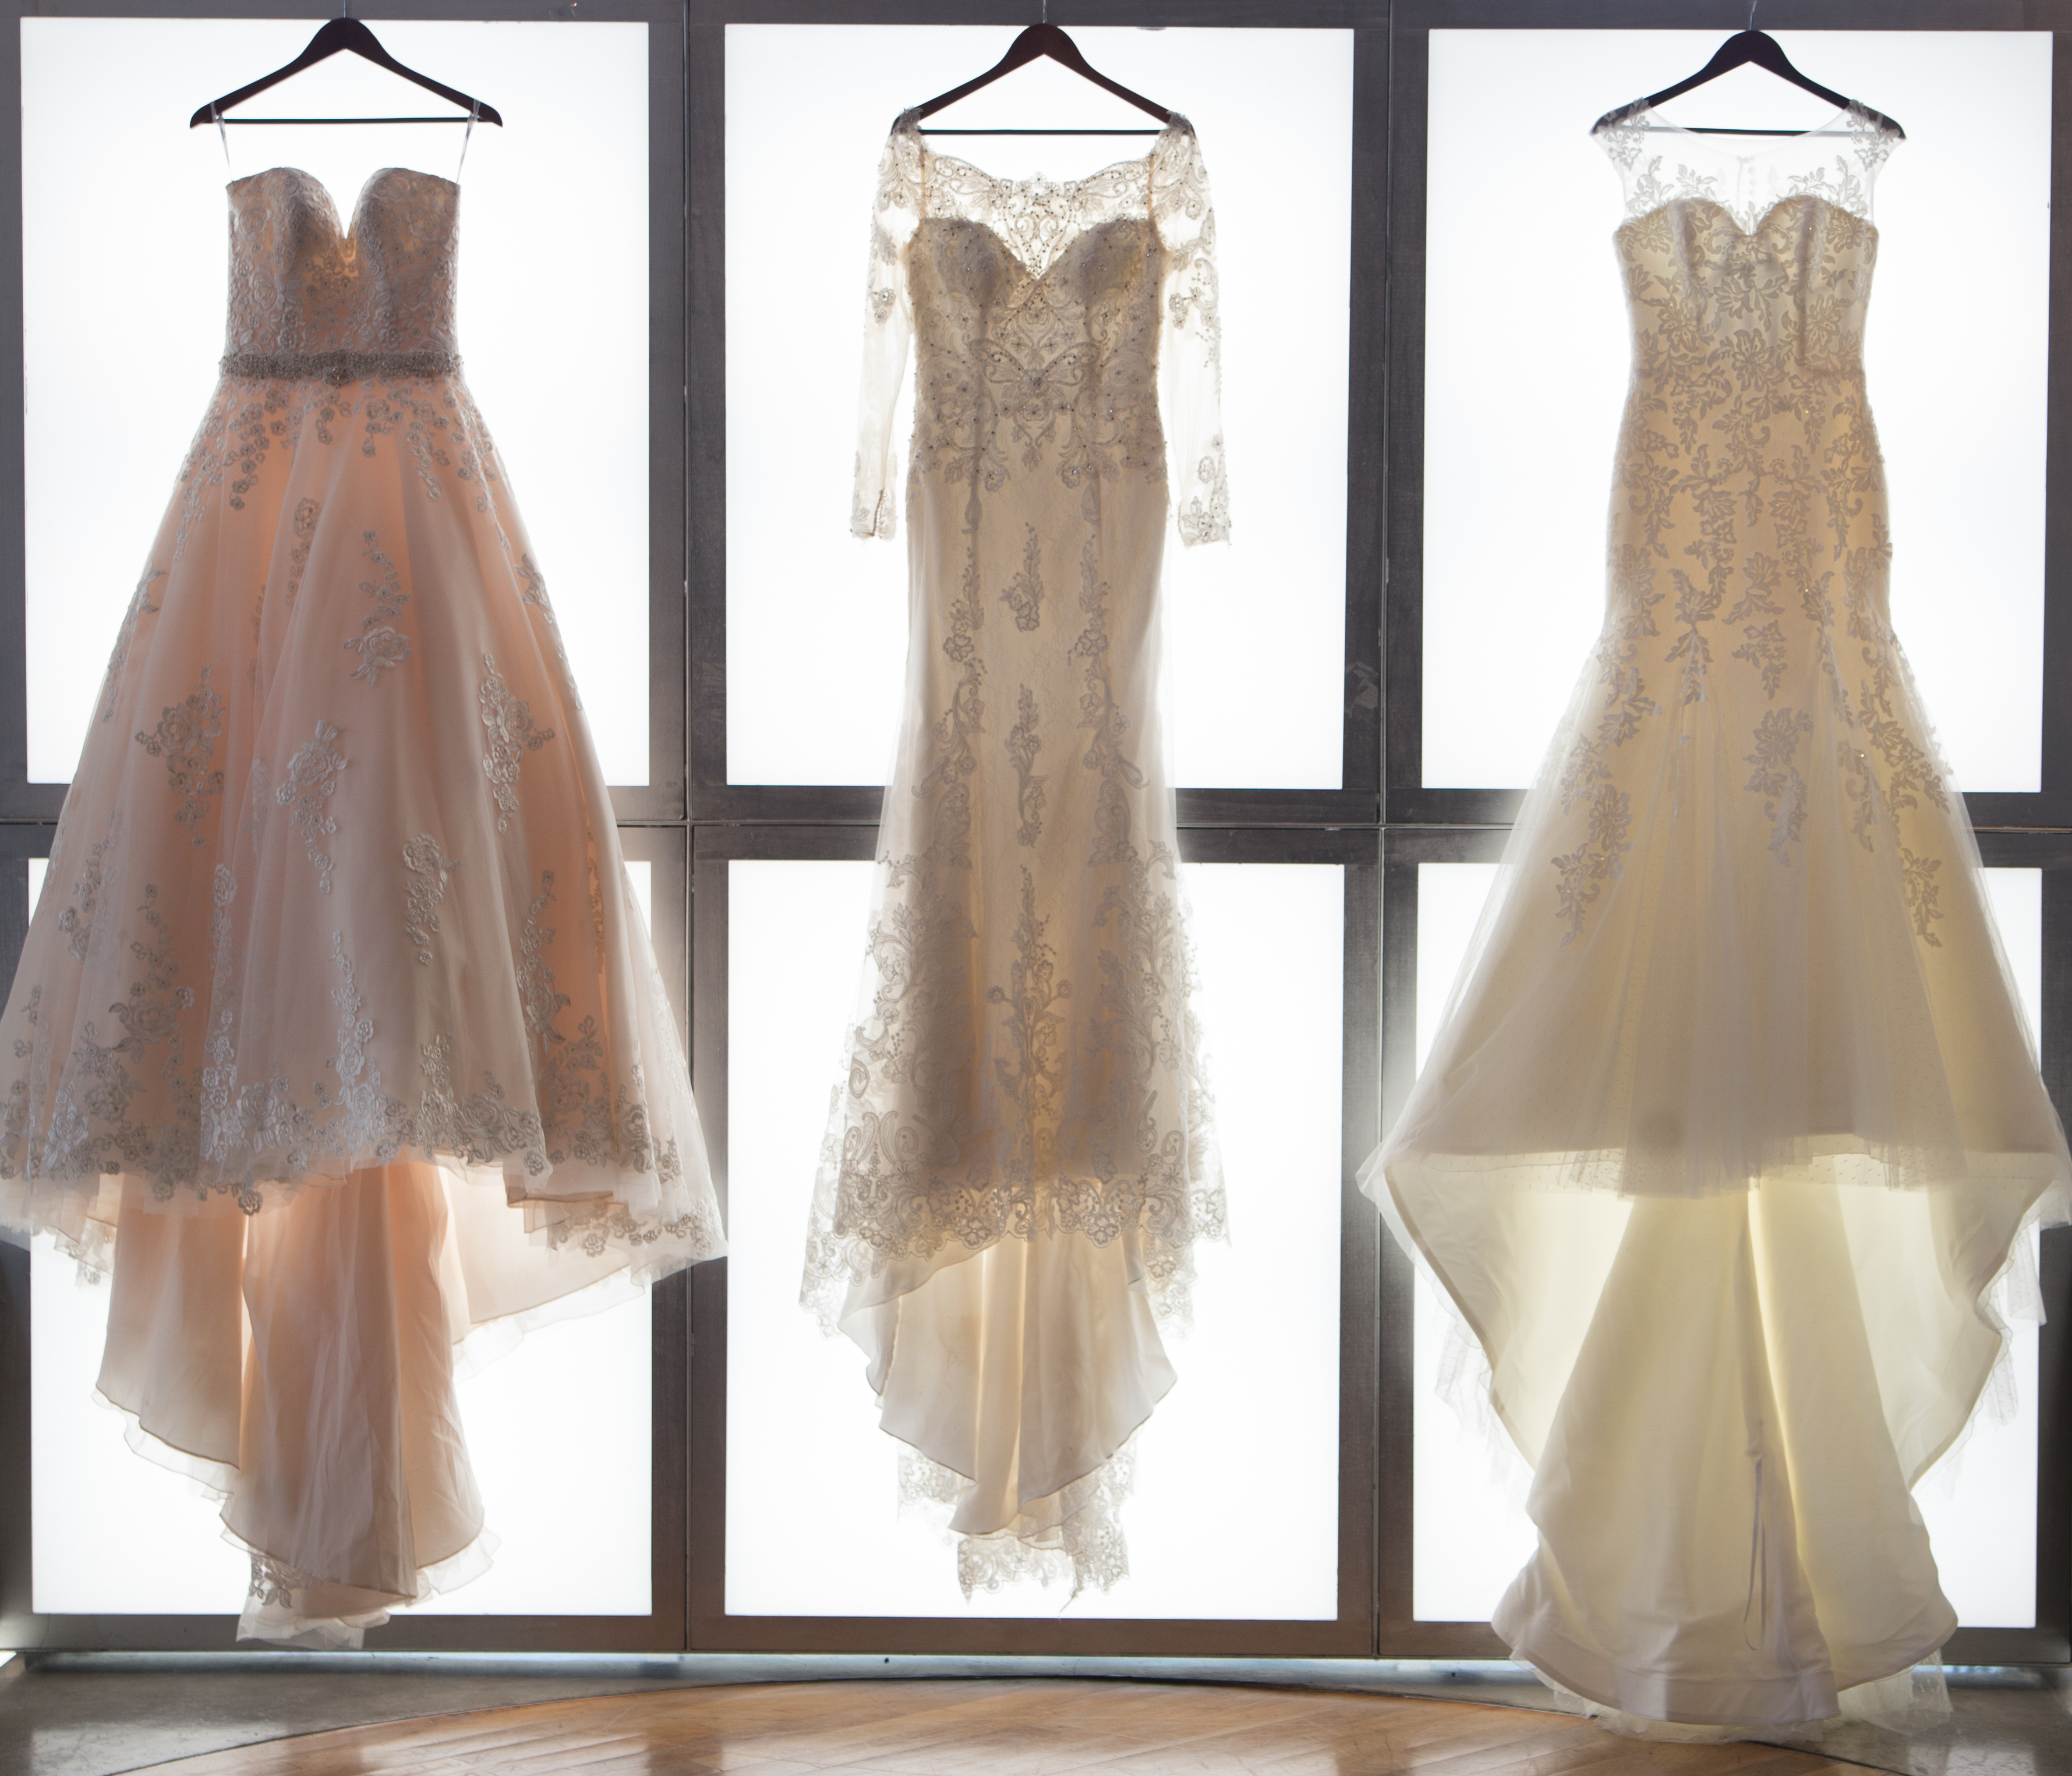 The dress gallery wichita kansas - Dresses Provided By Left To Right Sweet Illusion Bridal Fashion Boutique Accent Bridal Dress Gallery